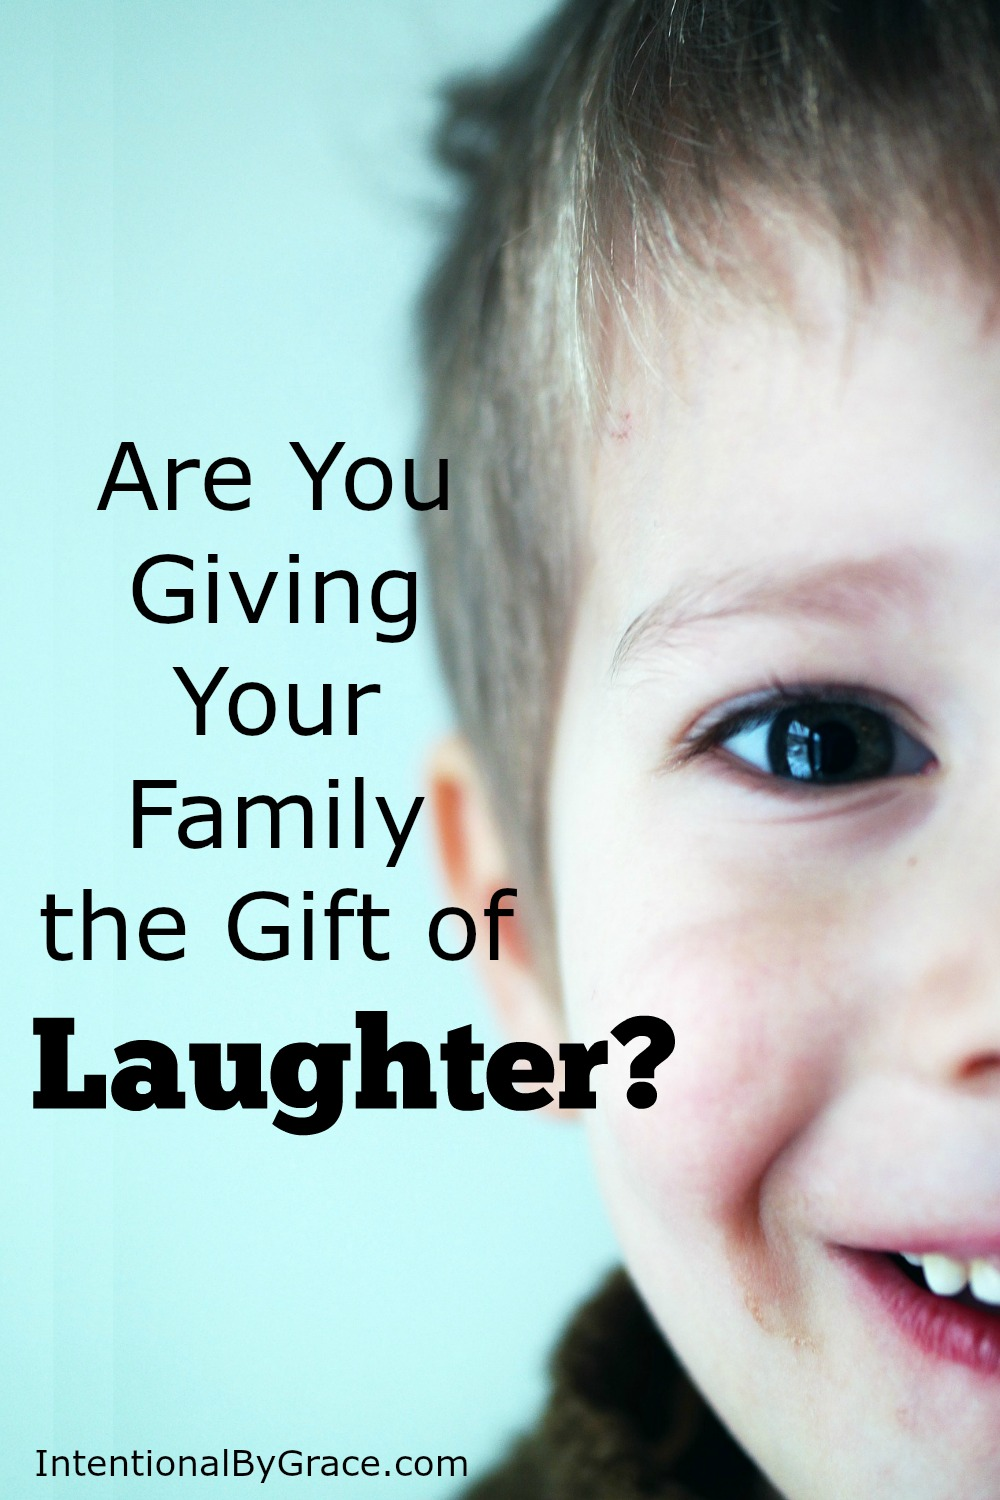 Are You Intentionally Connecting With Your Family Through Laughter?|Ideas to help you extend the gift of laughter to your family today.|IntentionalByGrace.com